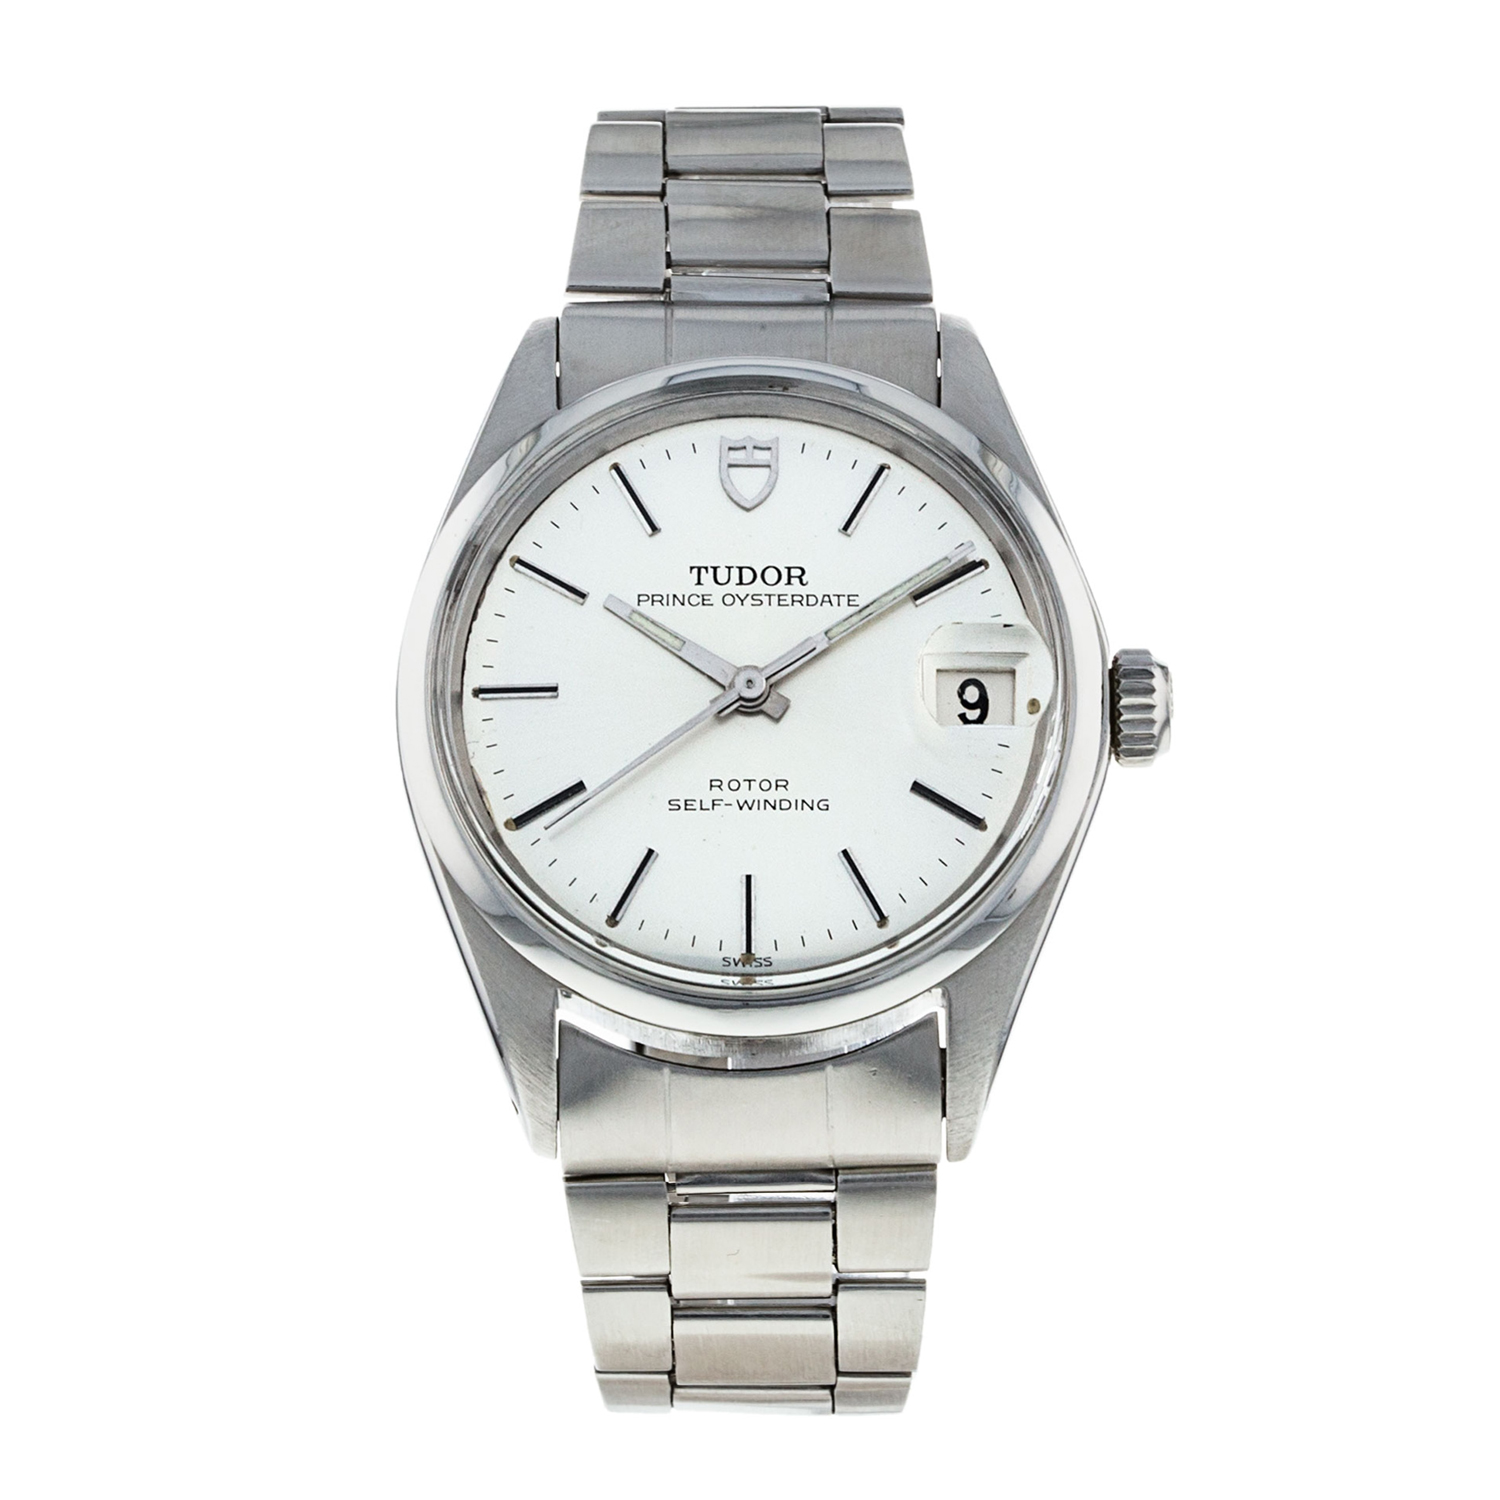 The present example of the Tudor Prince Oysterdate ref. 90900 at our shop is from 1996.